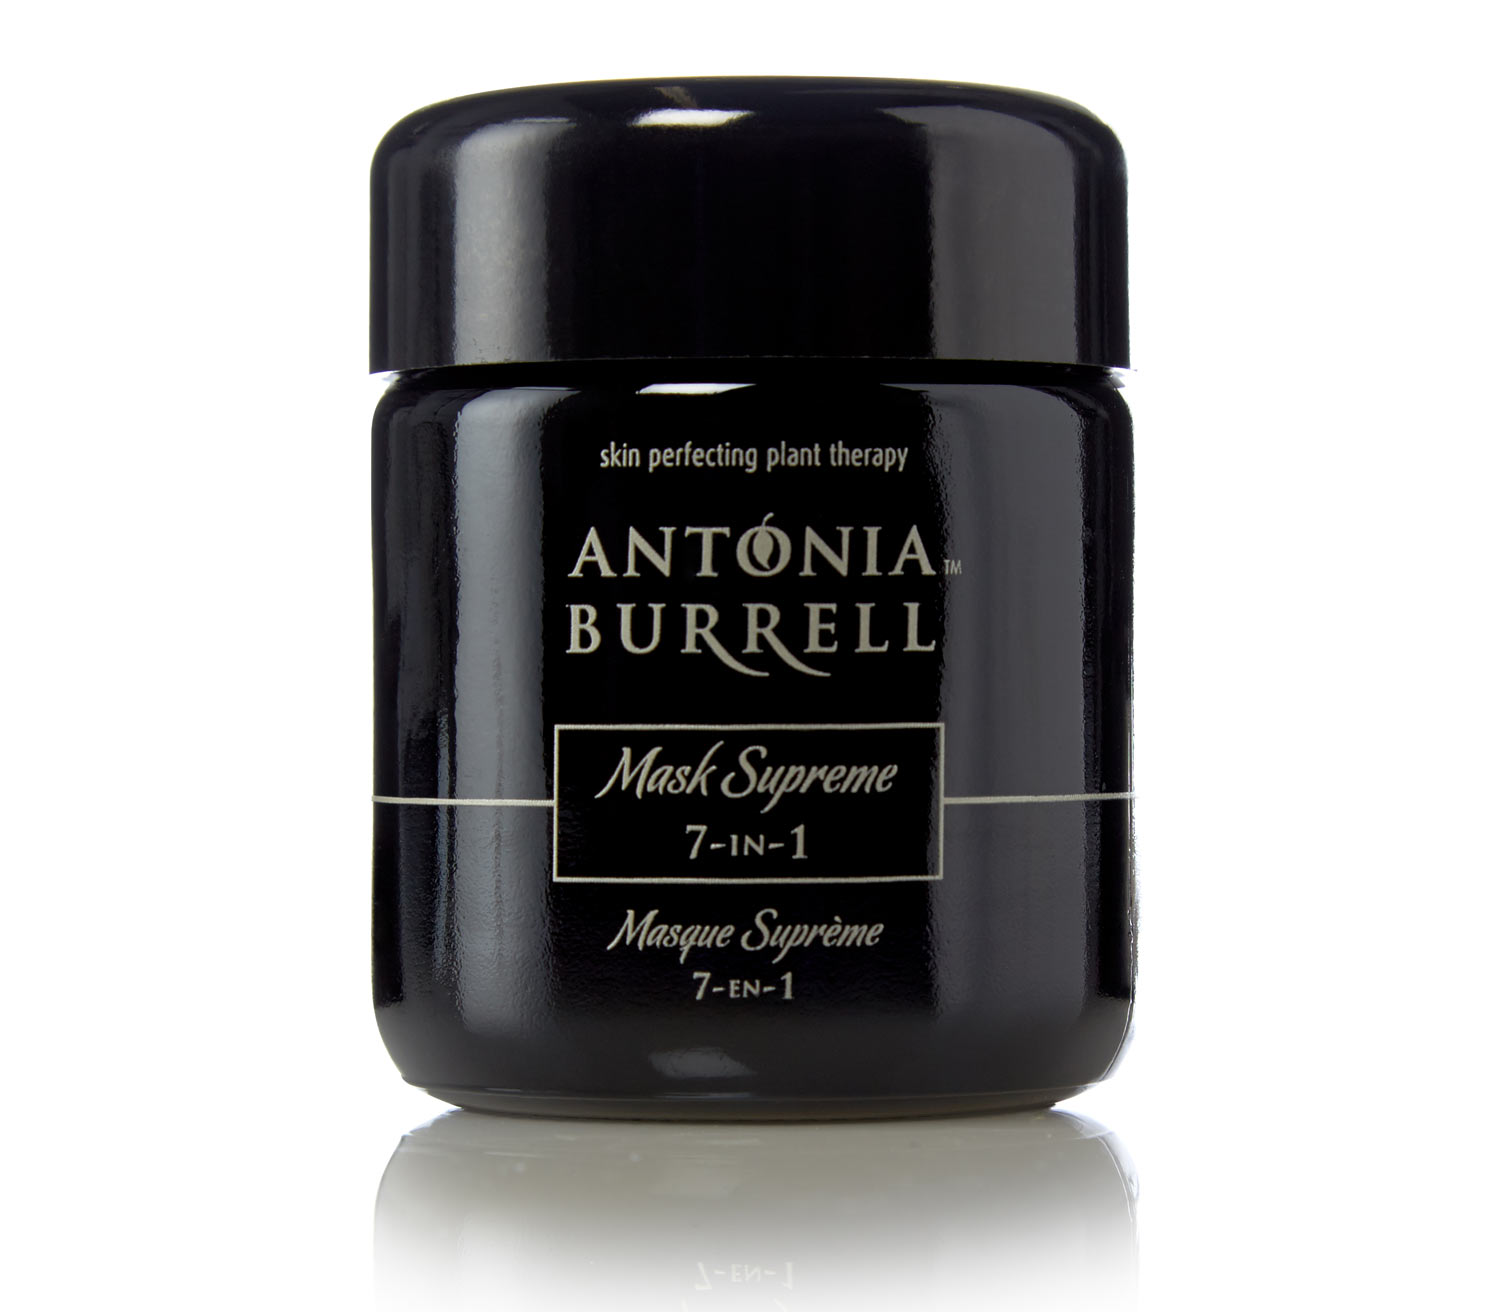 Antonia Burrell Mask Supreme 7 in 1